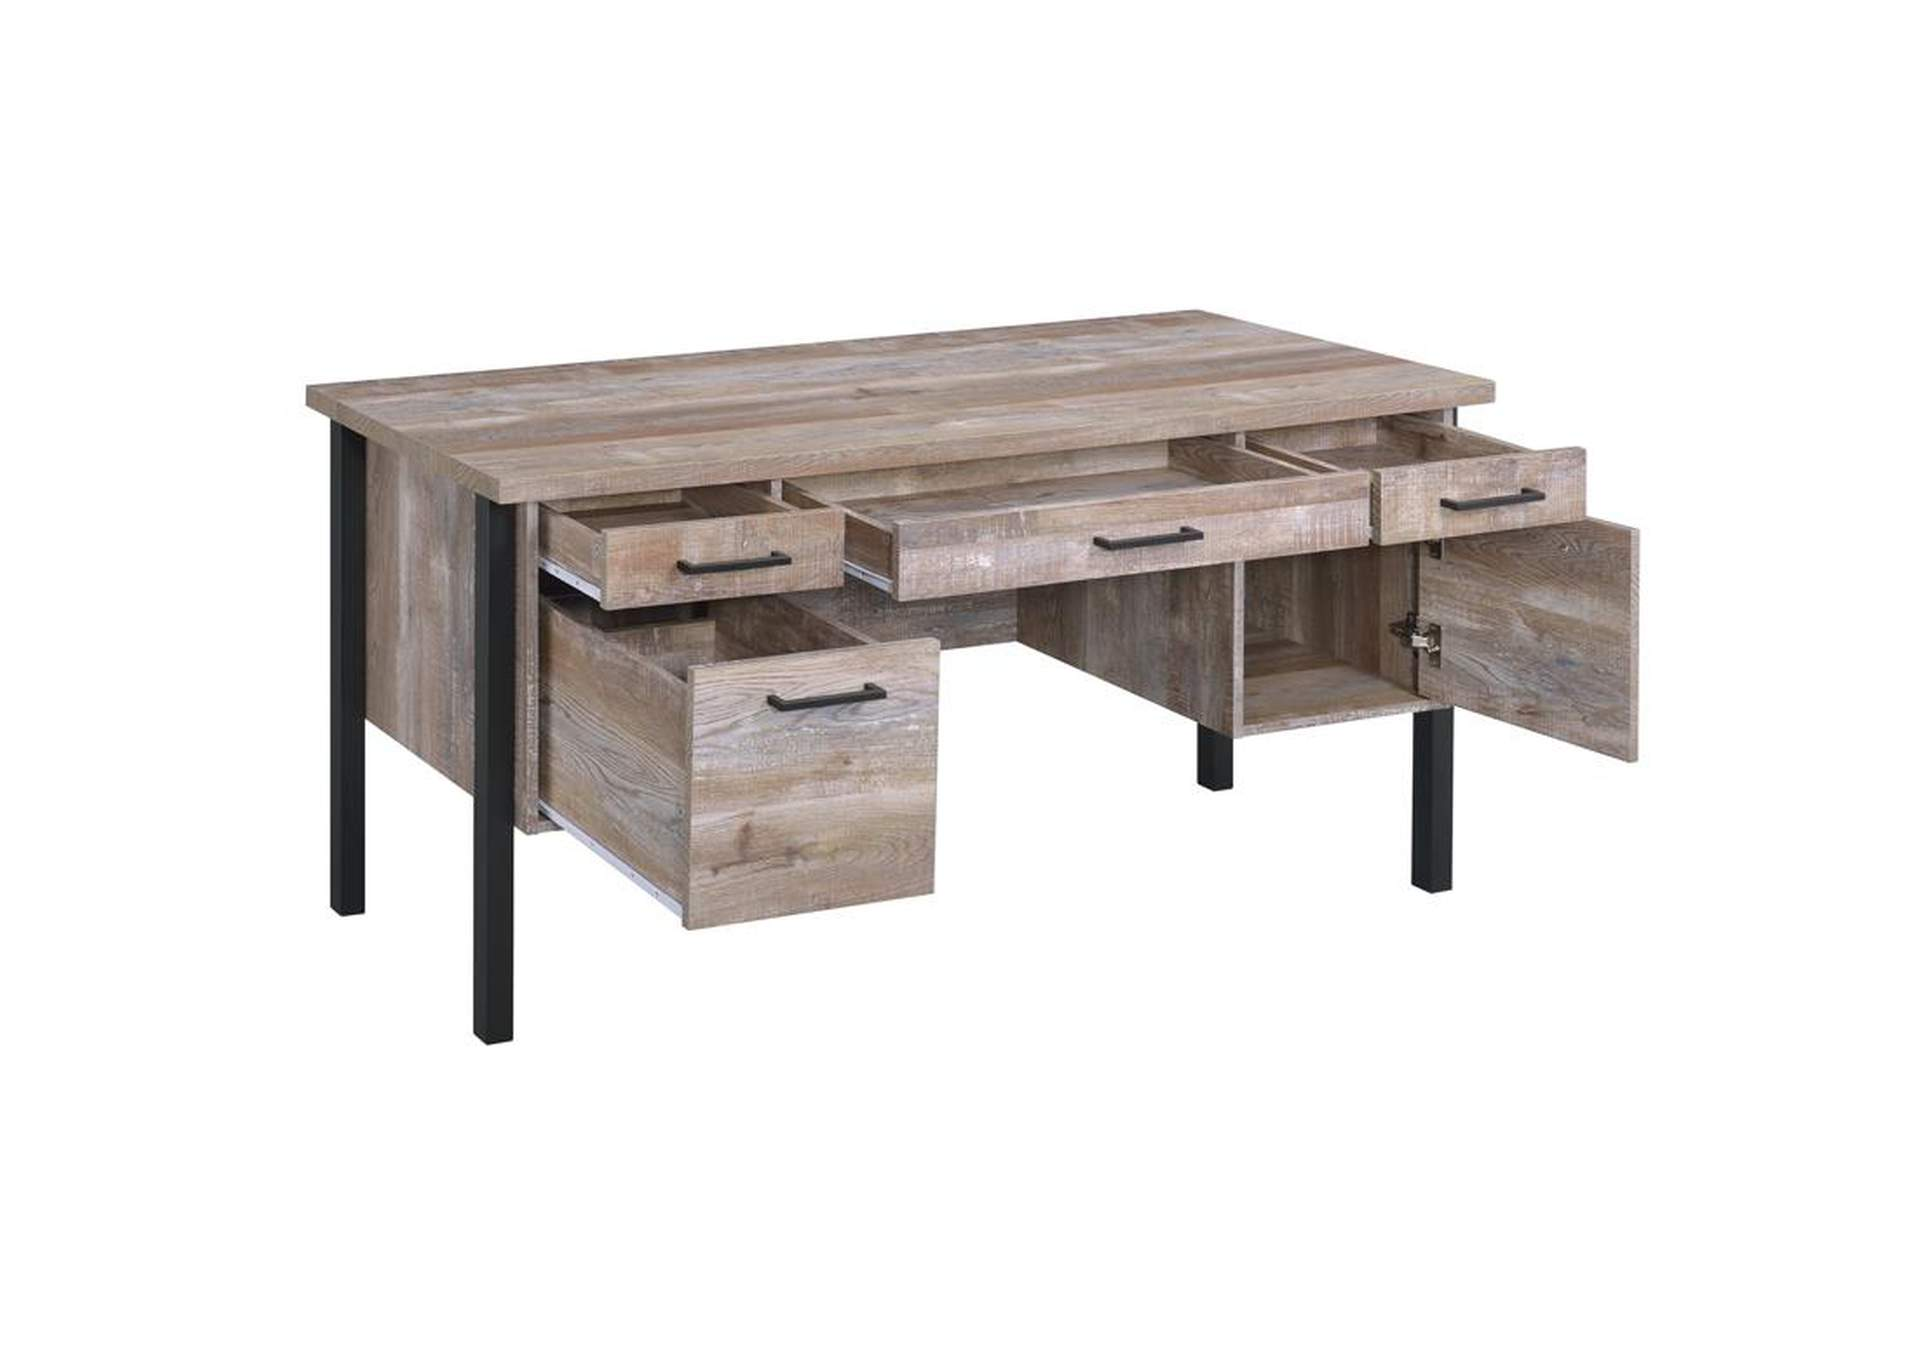 Weathered Oak Samson Rustic Weathered Oak Office Desk,Coaster Furniture